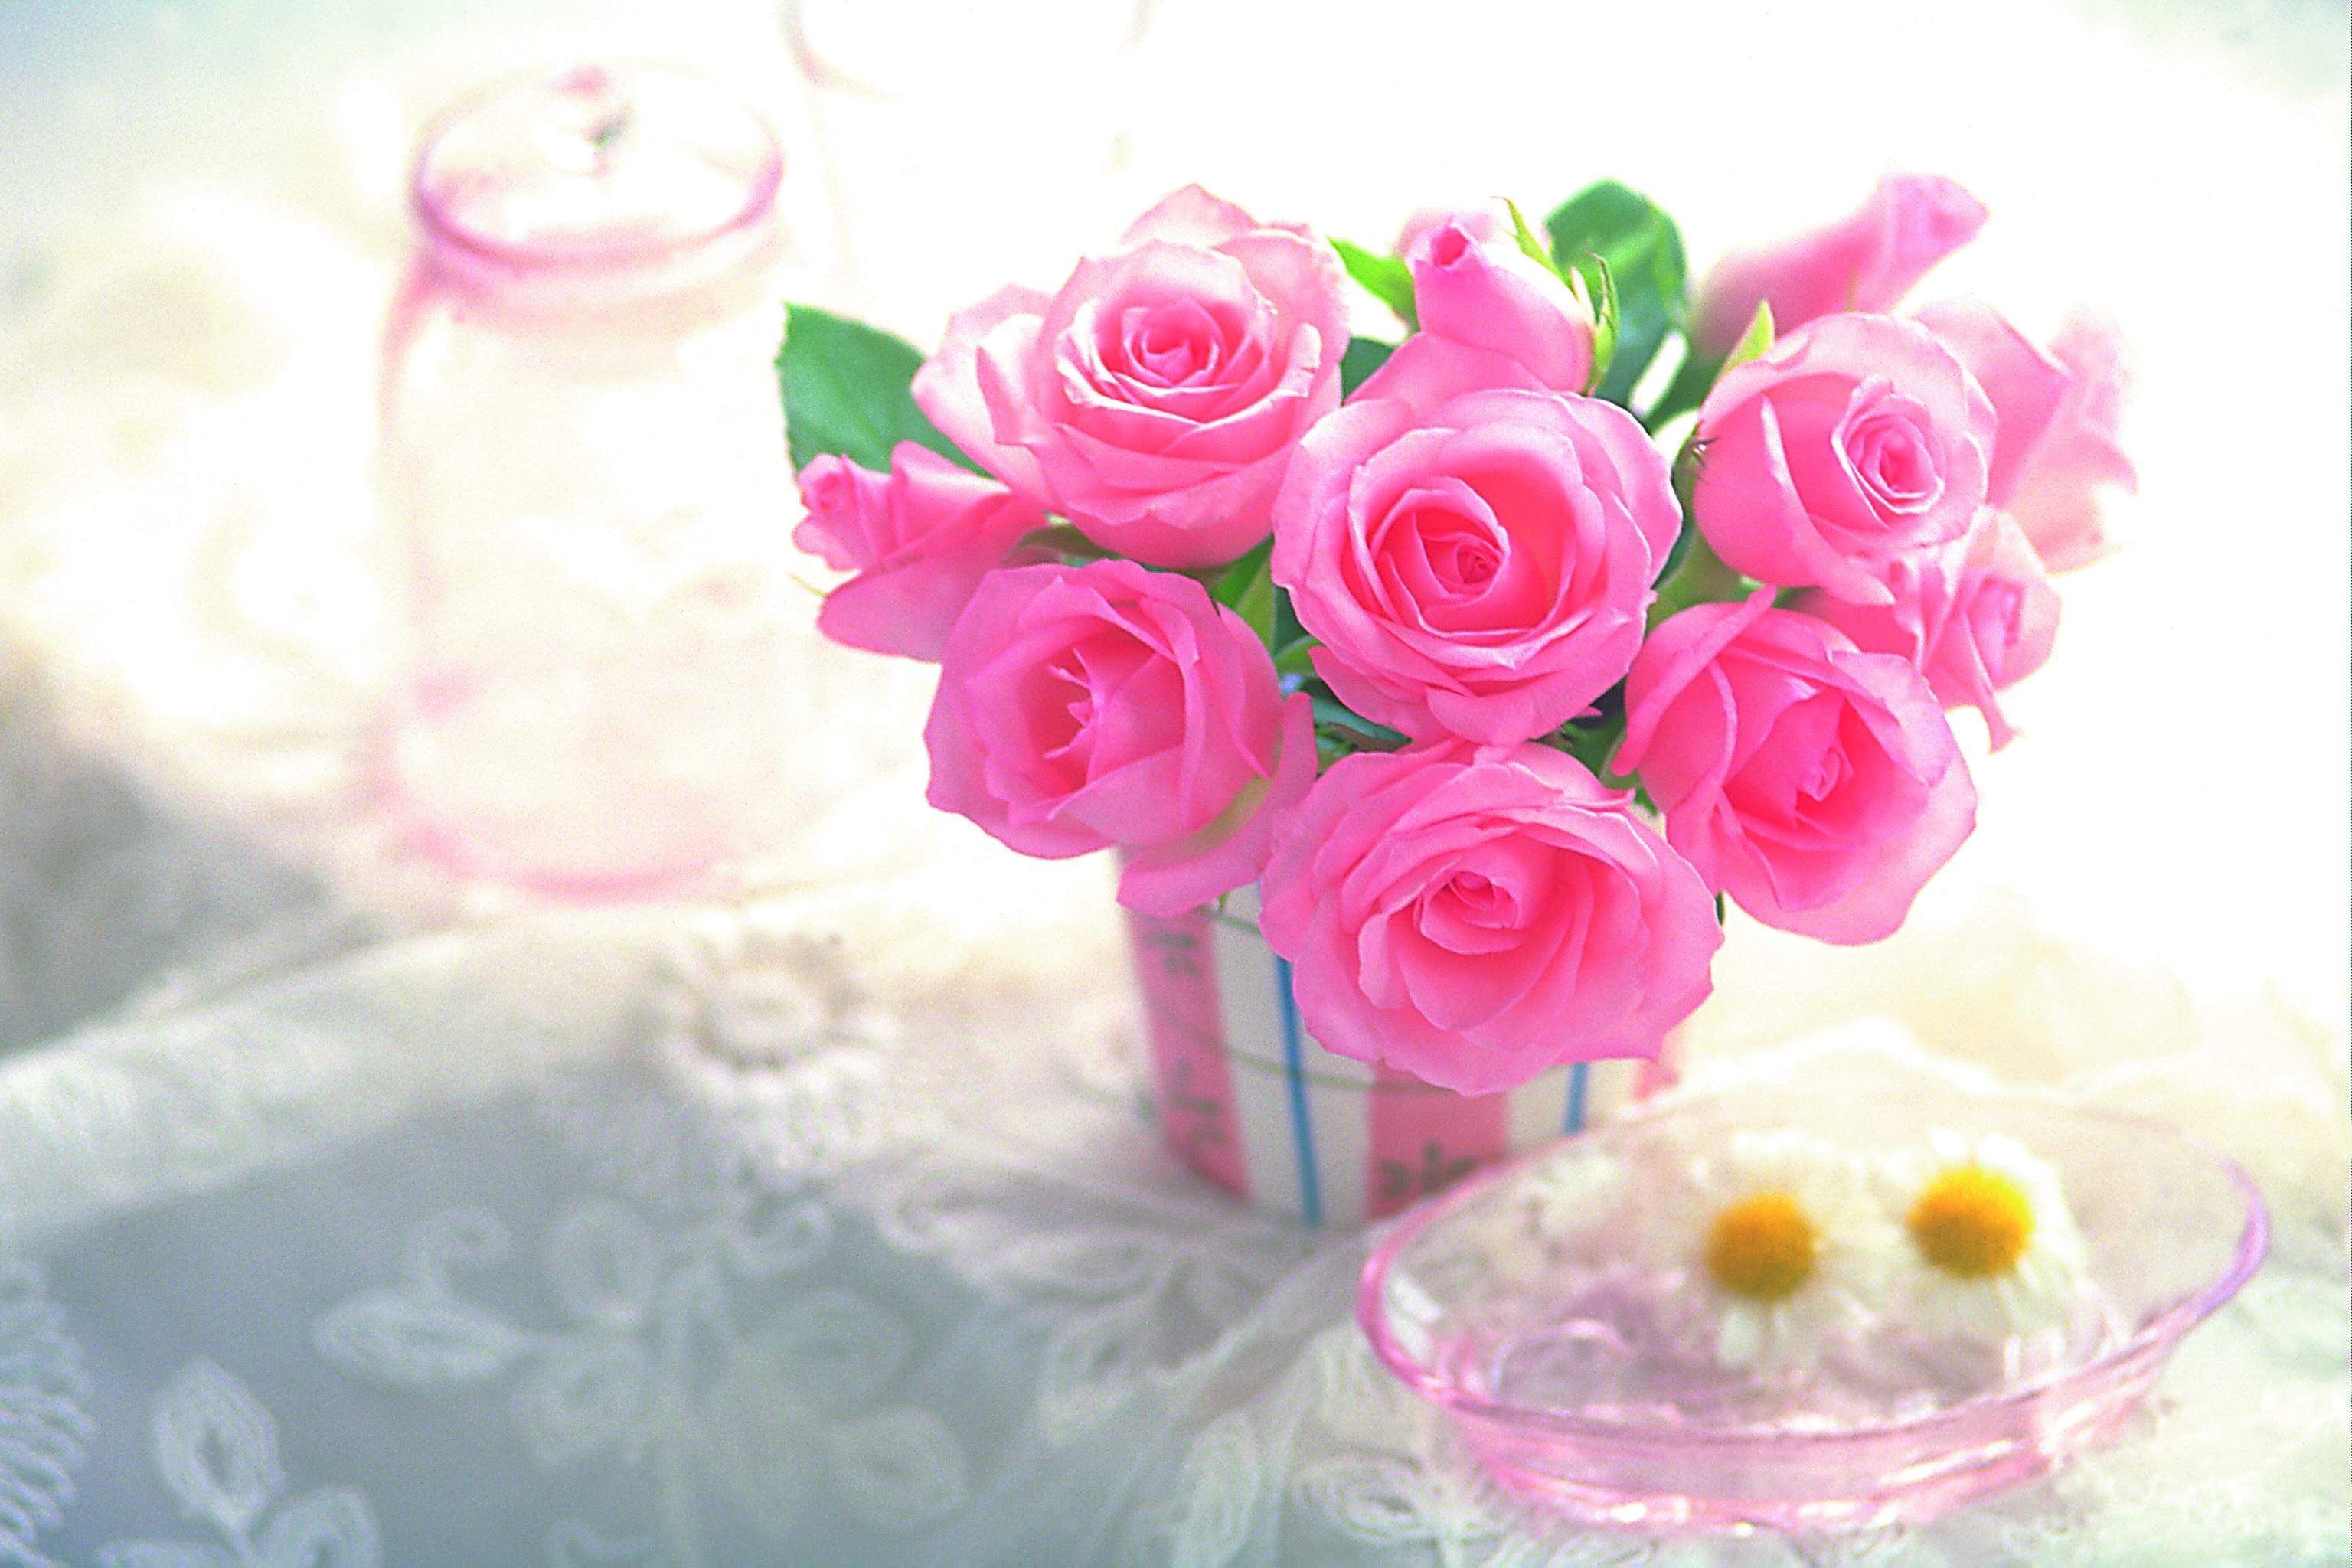 pink roses flowers | Pink Rose Flowers Photography | All Flowers ...